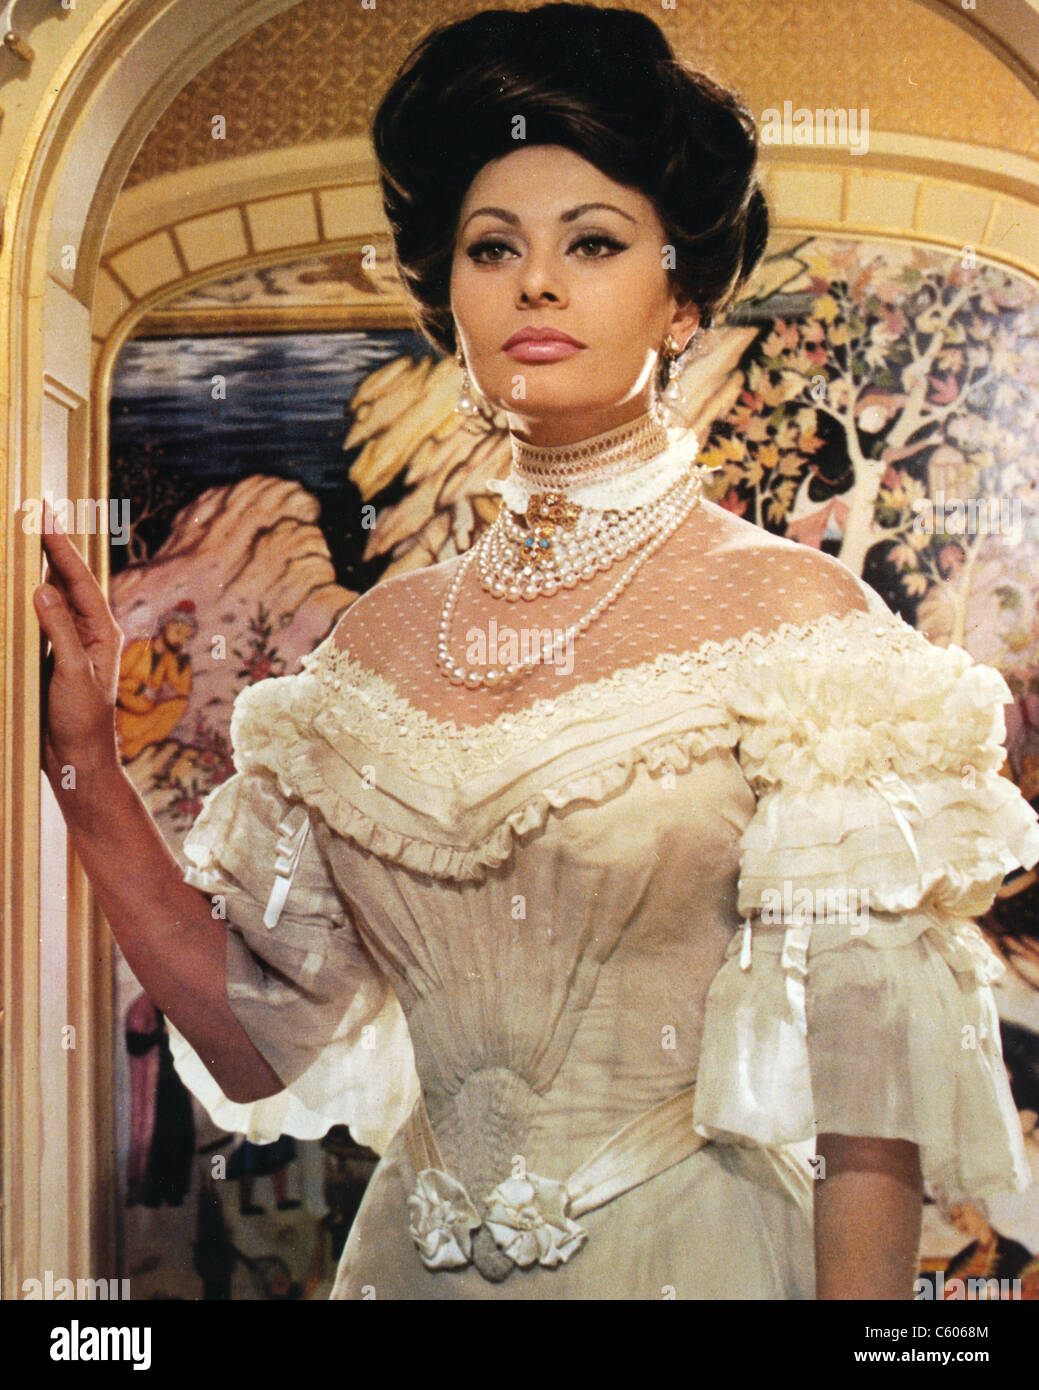 LADY L 1965 MGM film with Sophia Loren as Lady Louise